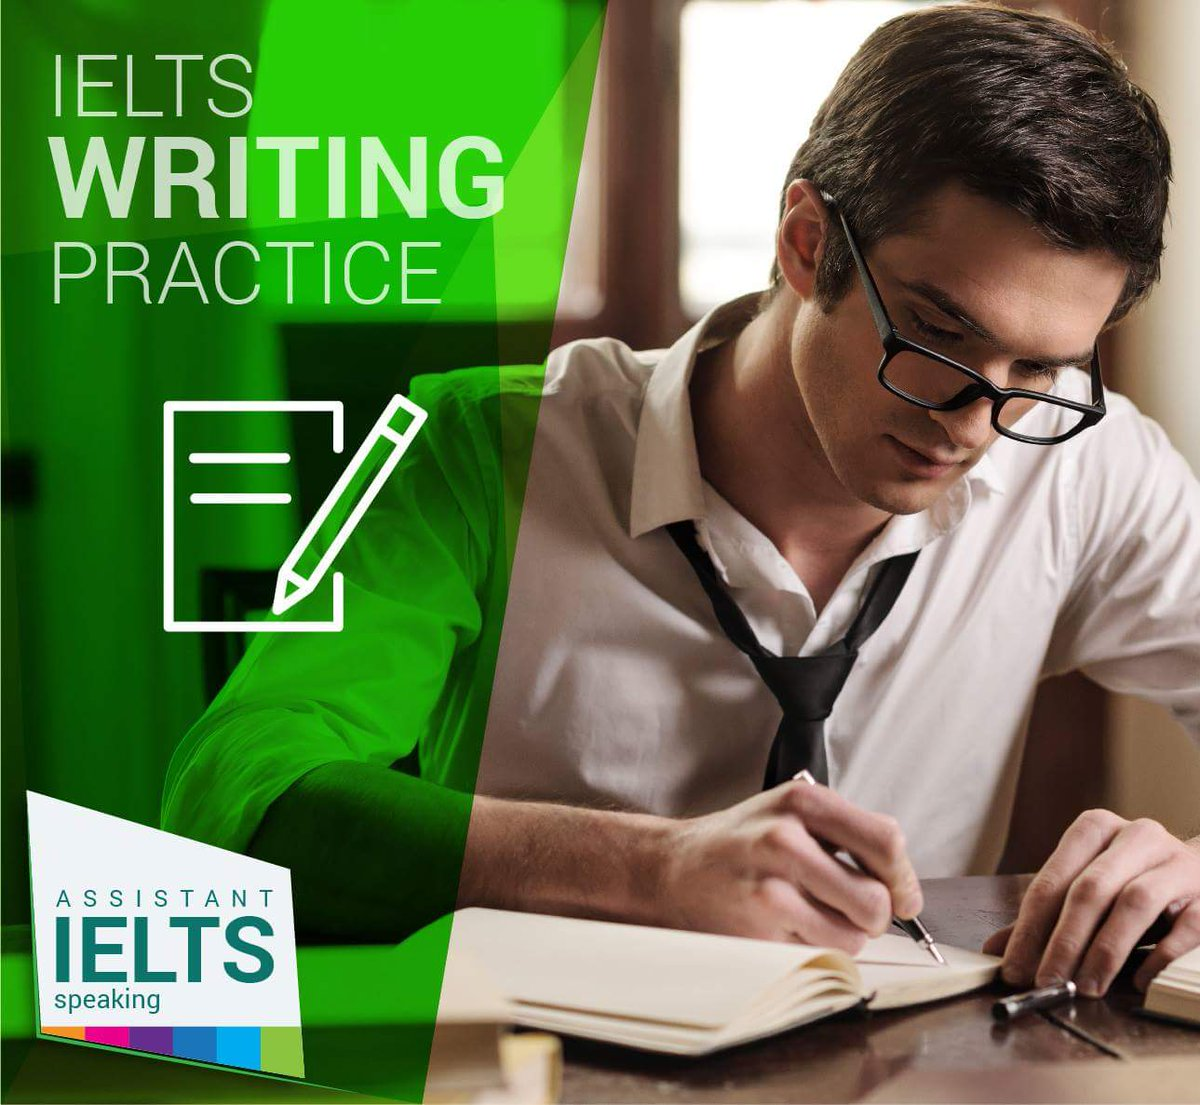 advertising essays ielts Essay questions to practice ielts writing task 2 for the topic of media and advertising some companies sponsor sports as a way to advertise themselves some people think it is good, while others think there are disadvantages to this.